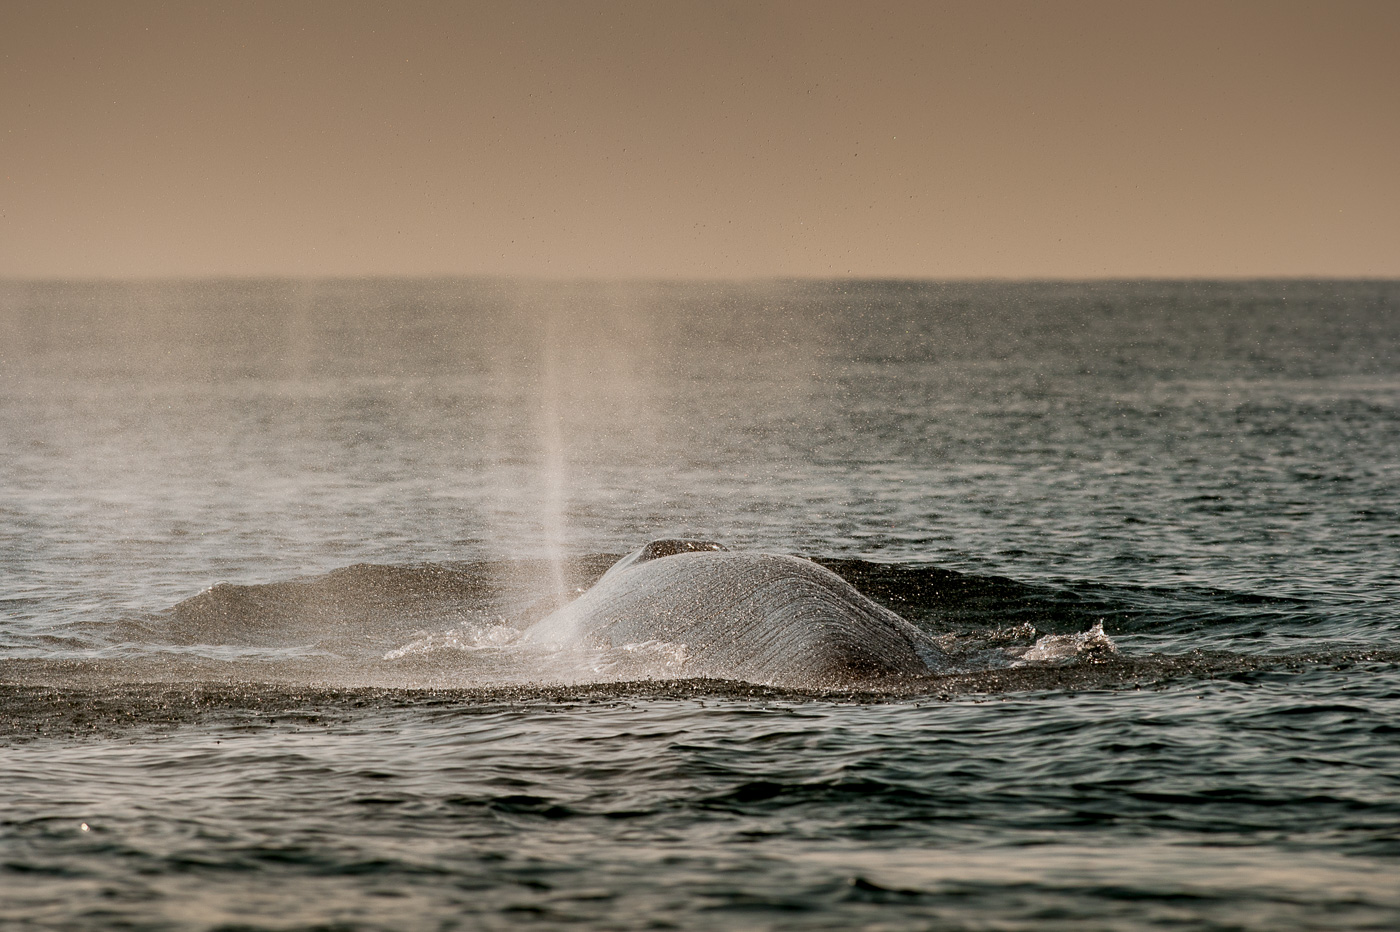 fin_whale_blow_ireland